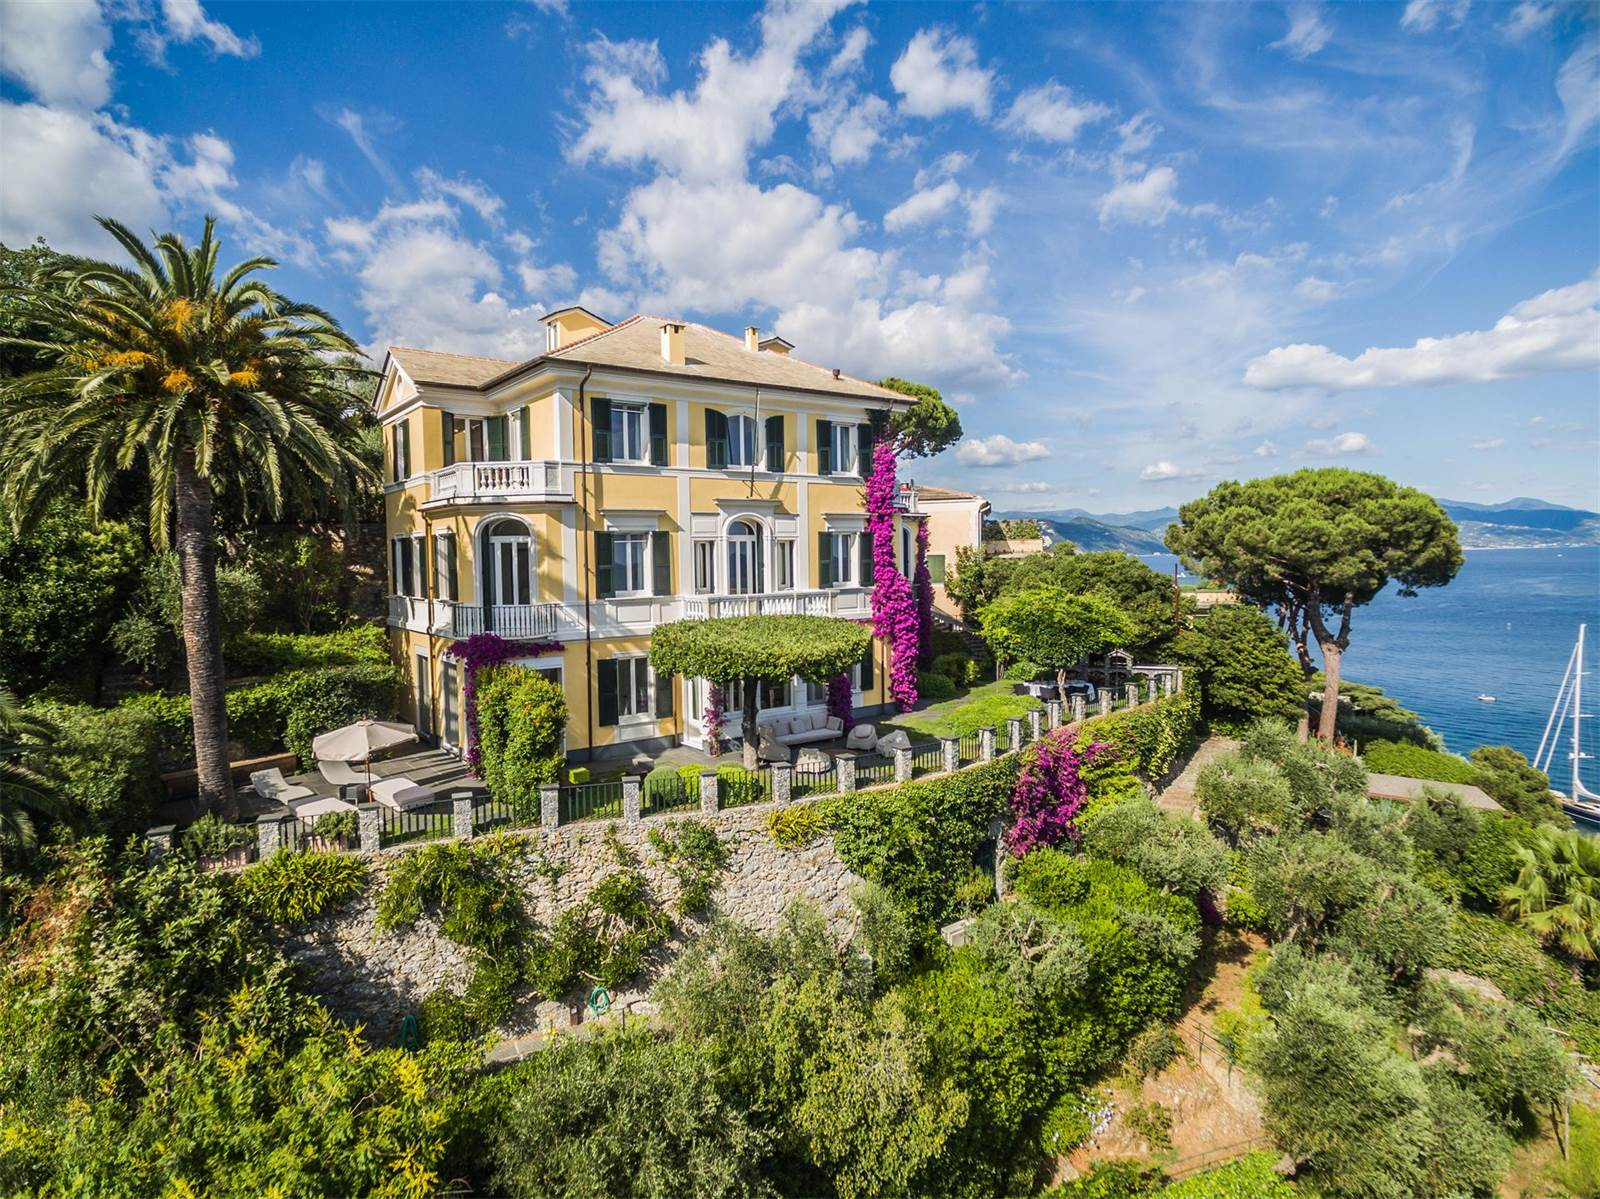 This beautiful Genoese mansion overlooks the Ligurian Sea from its idyllic hillside location above Portofino Bay.